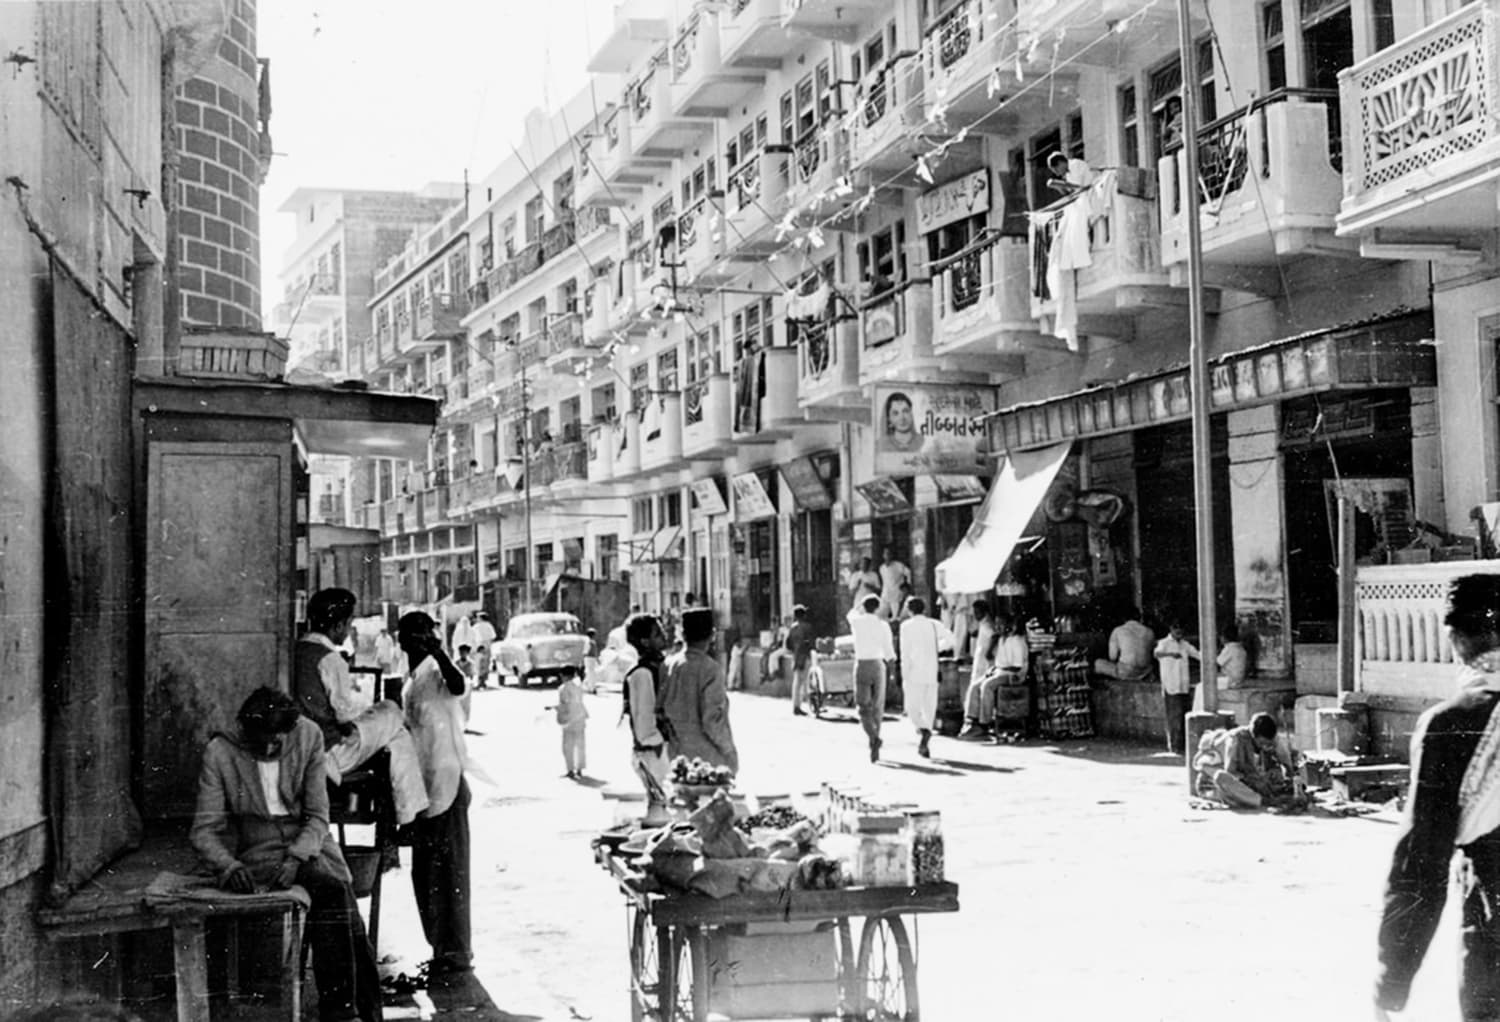 These pictures capture more than 2,300 years of Karachi's history